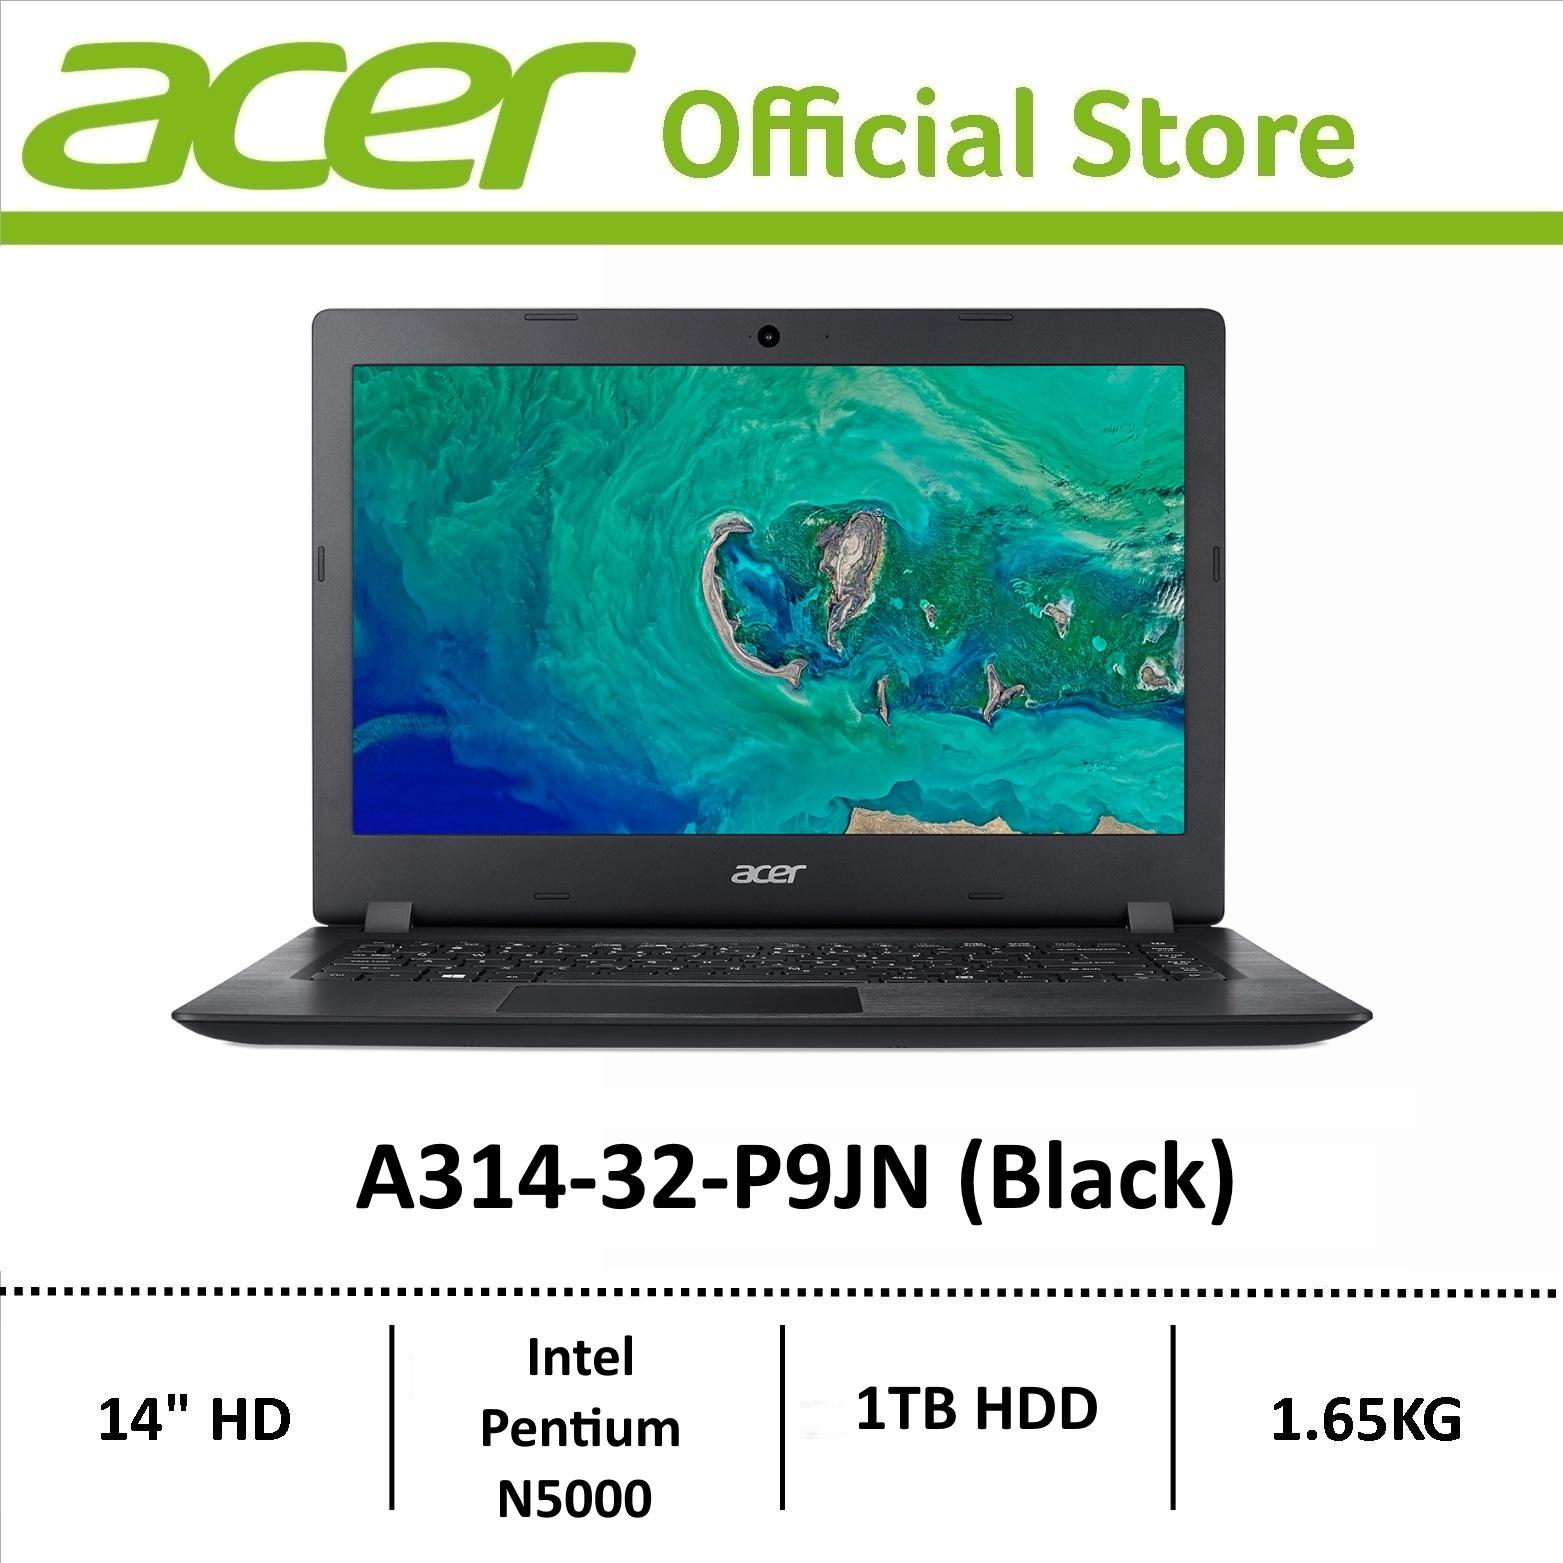 Acer Aspire 3 A314-32-P9JN (Black) 14-Inch Laptop with 1TB Storage